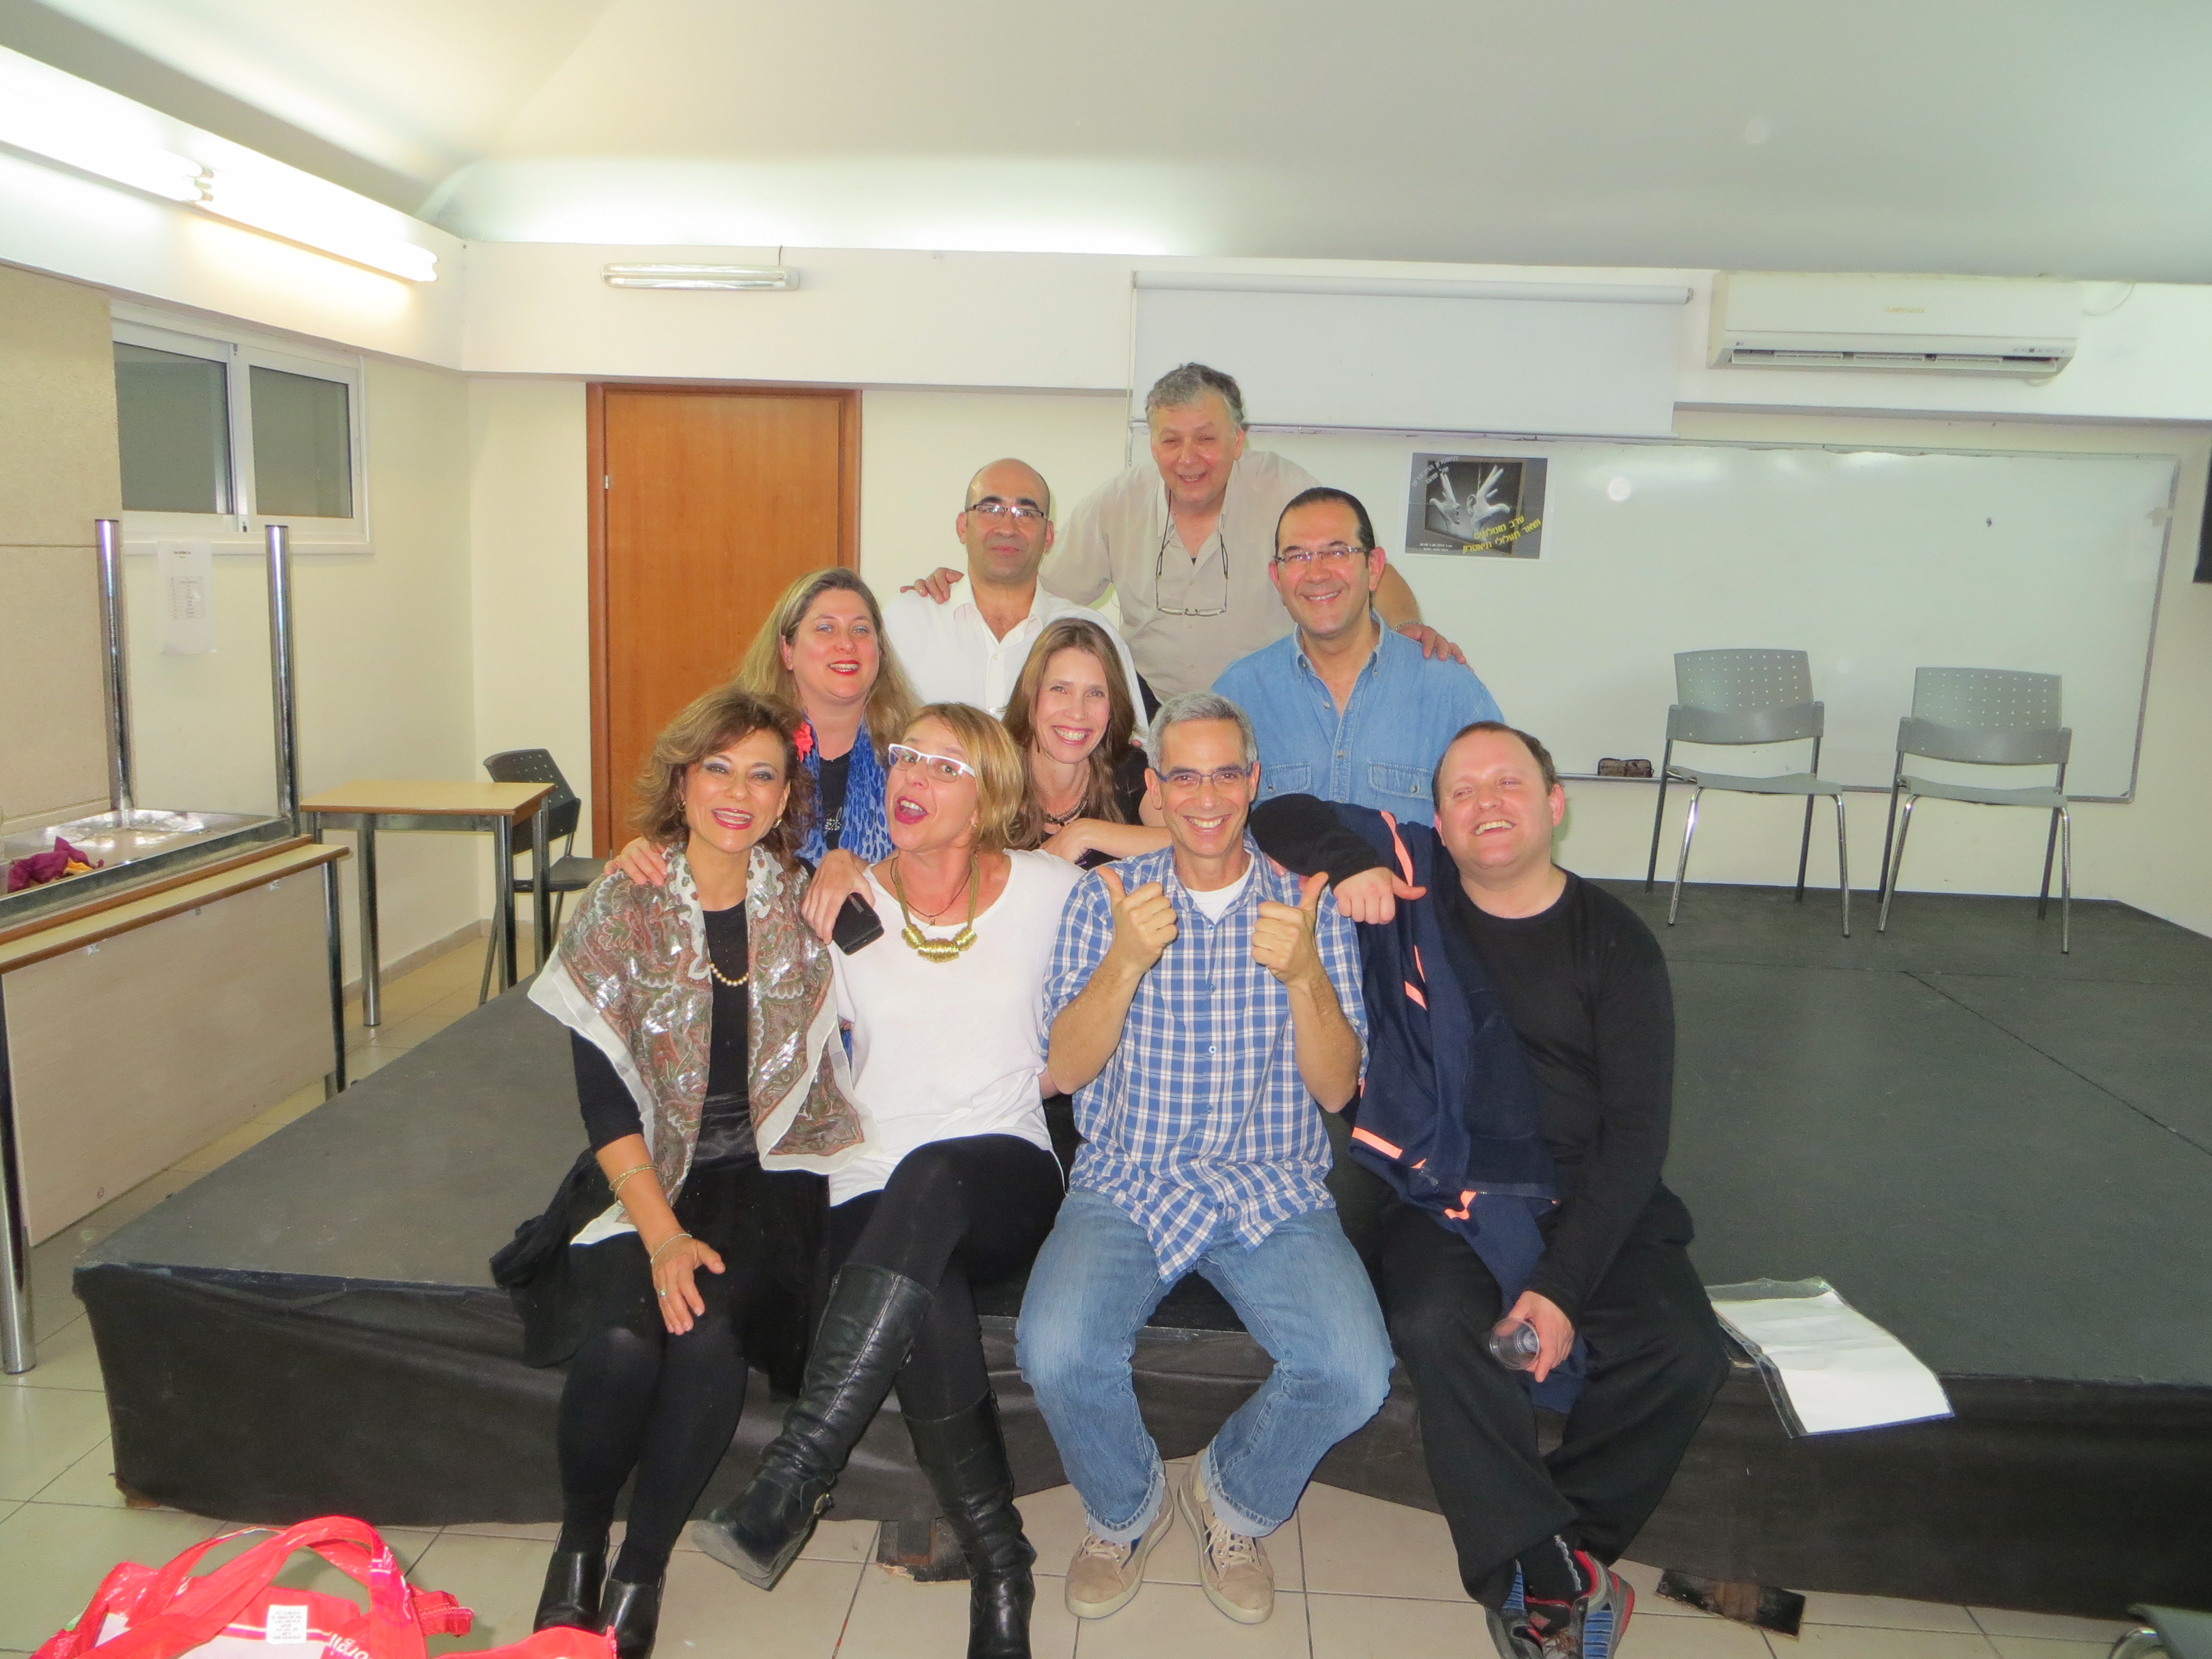 With the theatre group